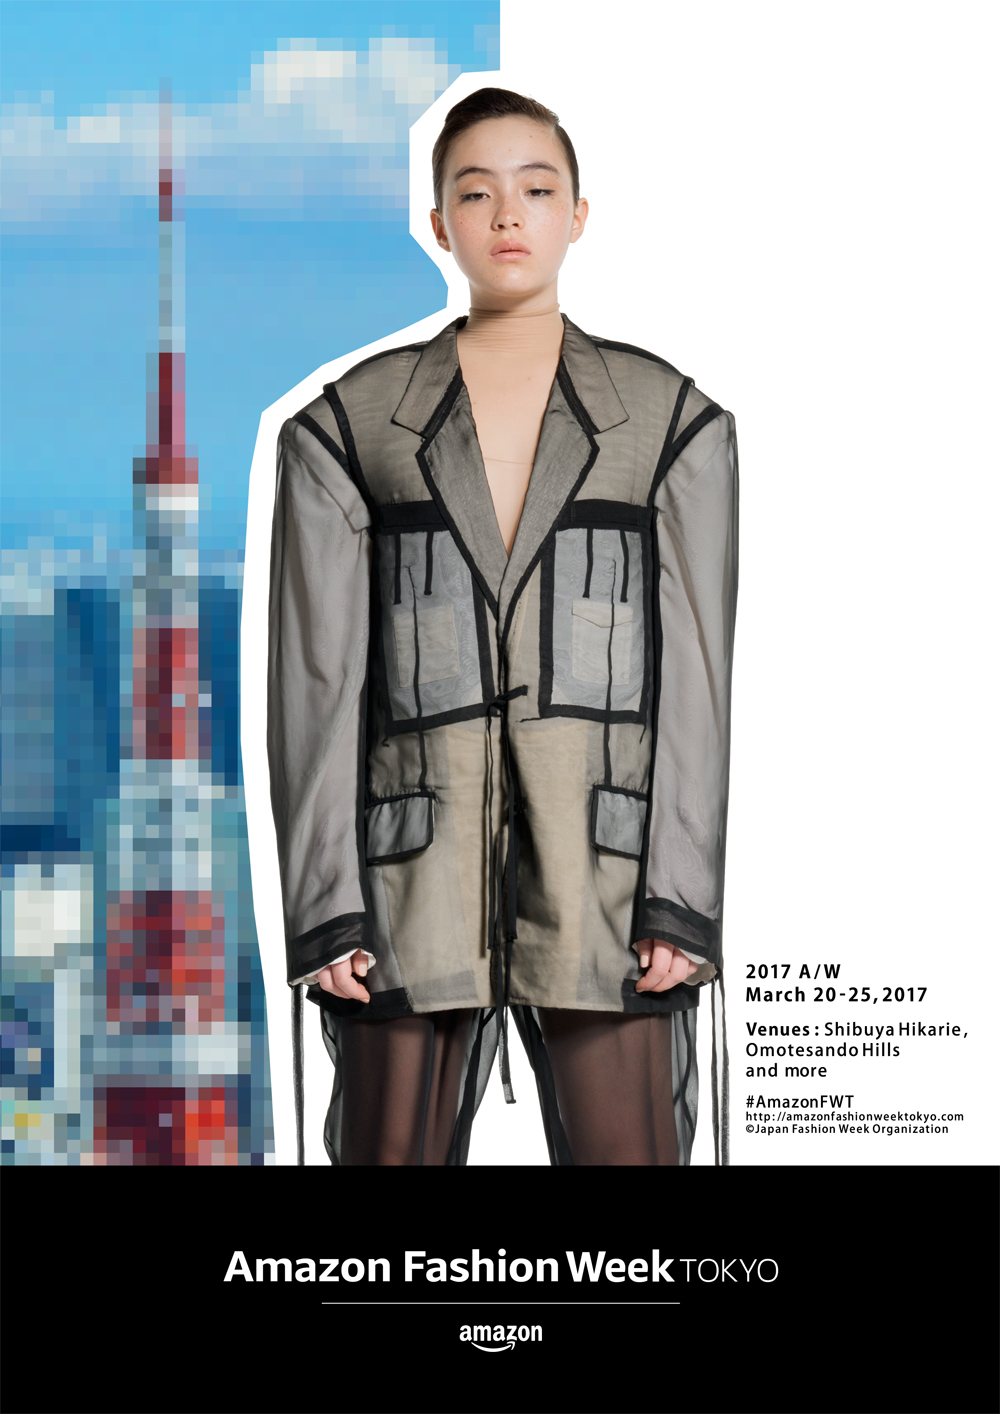 Amazon Fashion Week TOKYO 2017 A/W Key Visual